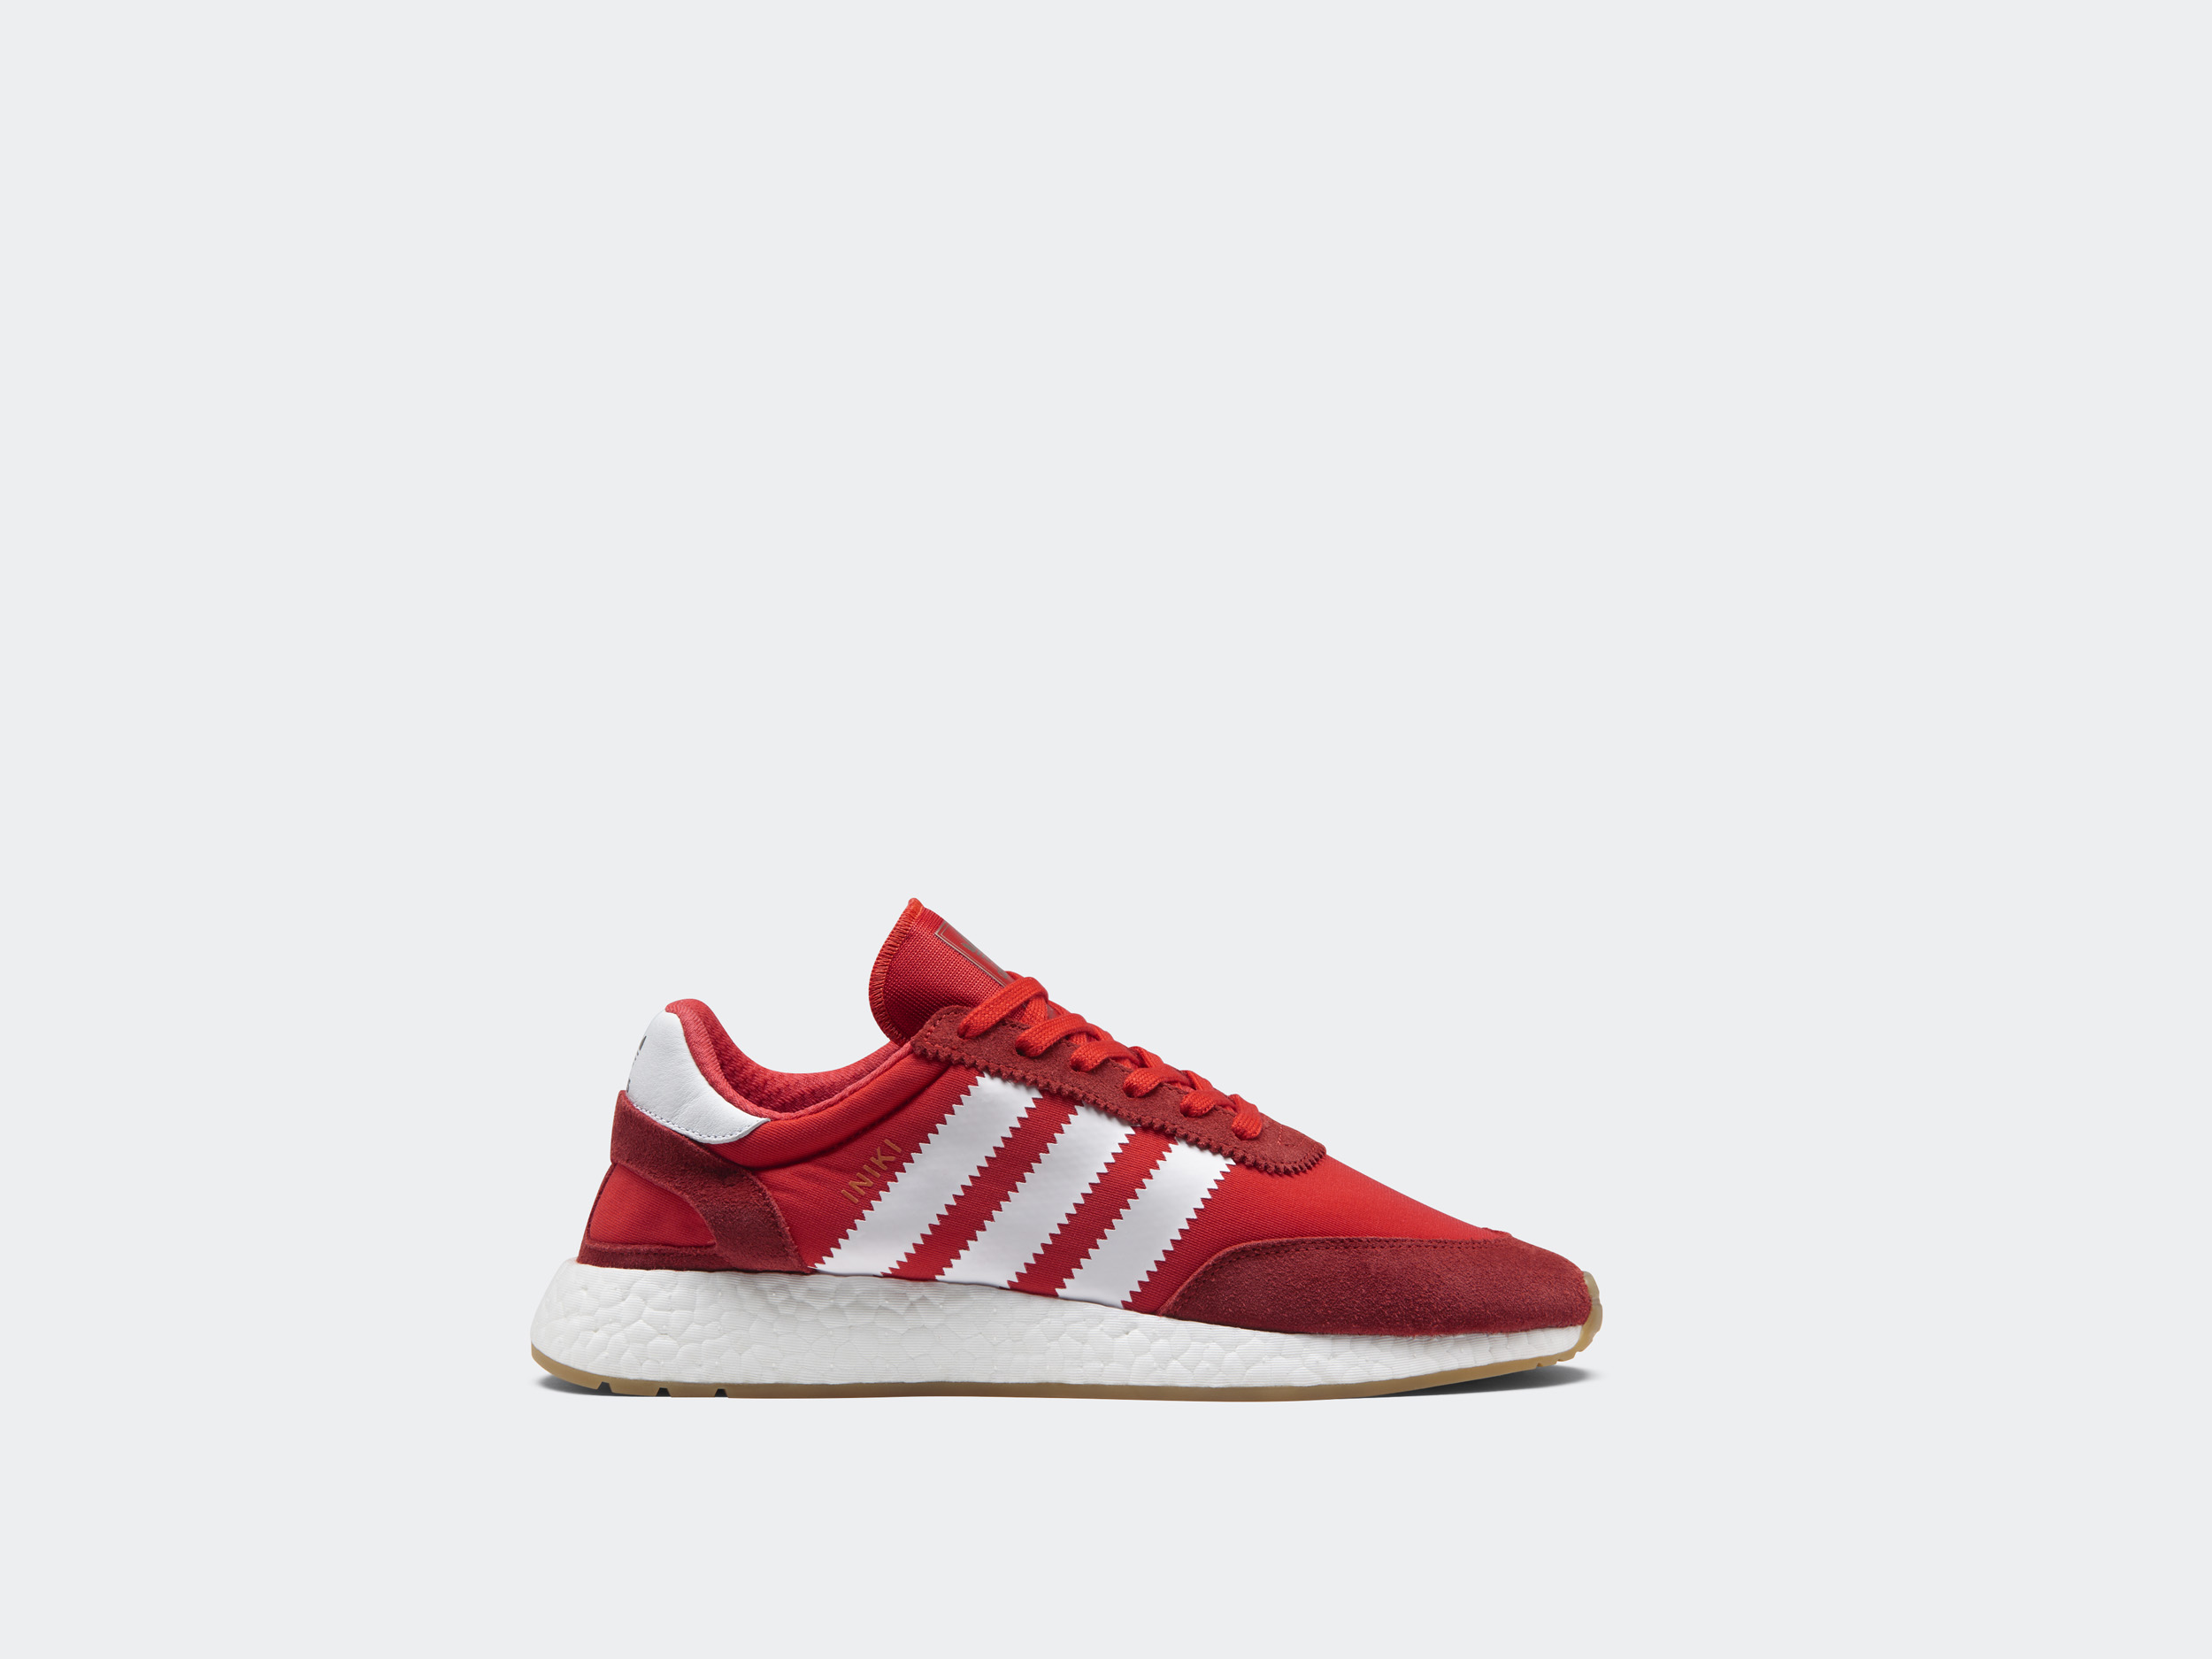 Adidas Originals - The Iniki Runner